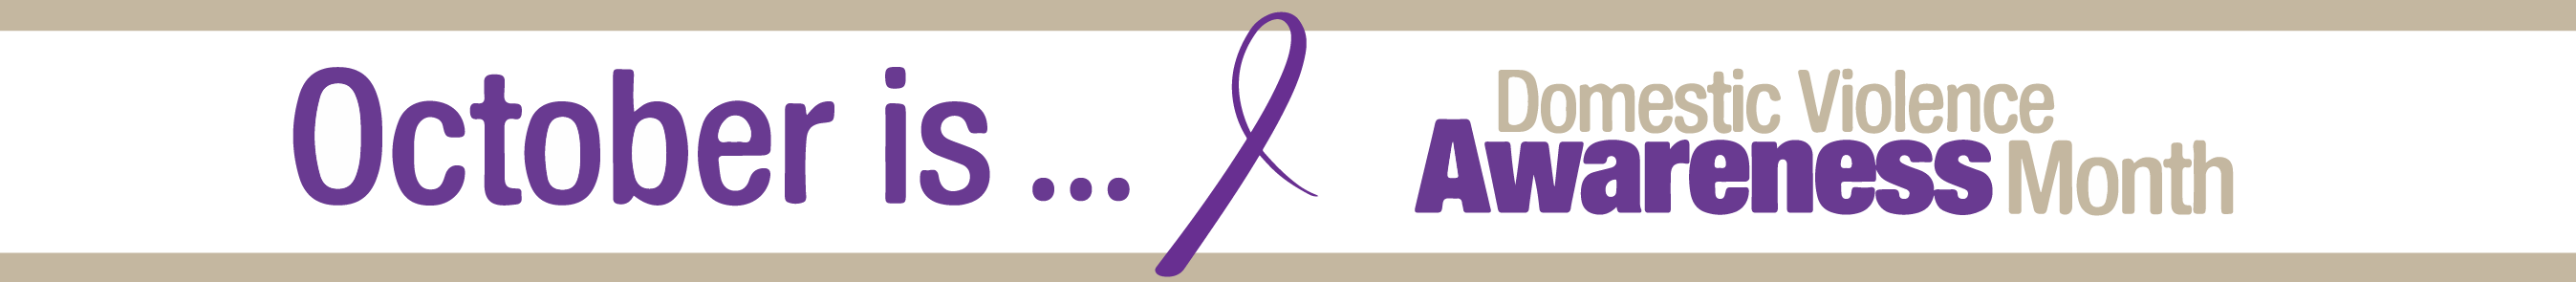 White banner with the text October is... and image of a purple ribon and then the text Domestic Violence Awareness Month